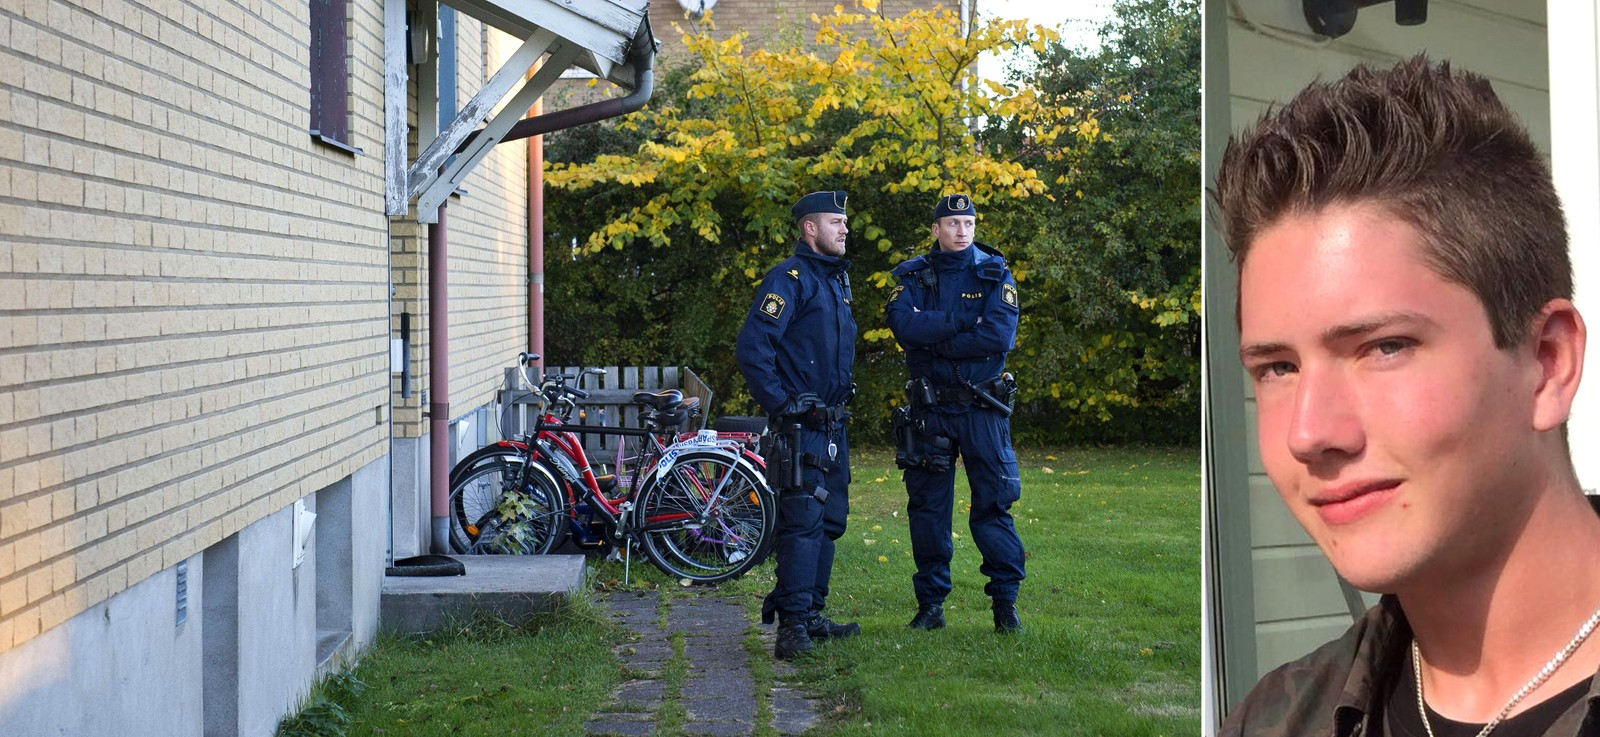 Her bodde drapsmannen Police officers guard on October 23, 2015 the apartment building where the man who allegedely attacked students at a primary and middle school in Trollhattan, southwestern Sweden, used to live. The masked man brandishing a sword broke into a school in Sweden, killing two people and seriously wounding two others before being shot by police. AFP PHOTO / JONATHAN NACKSTRAND -